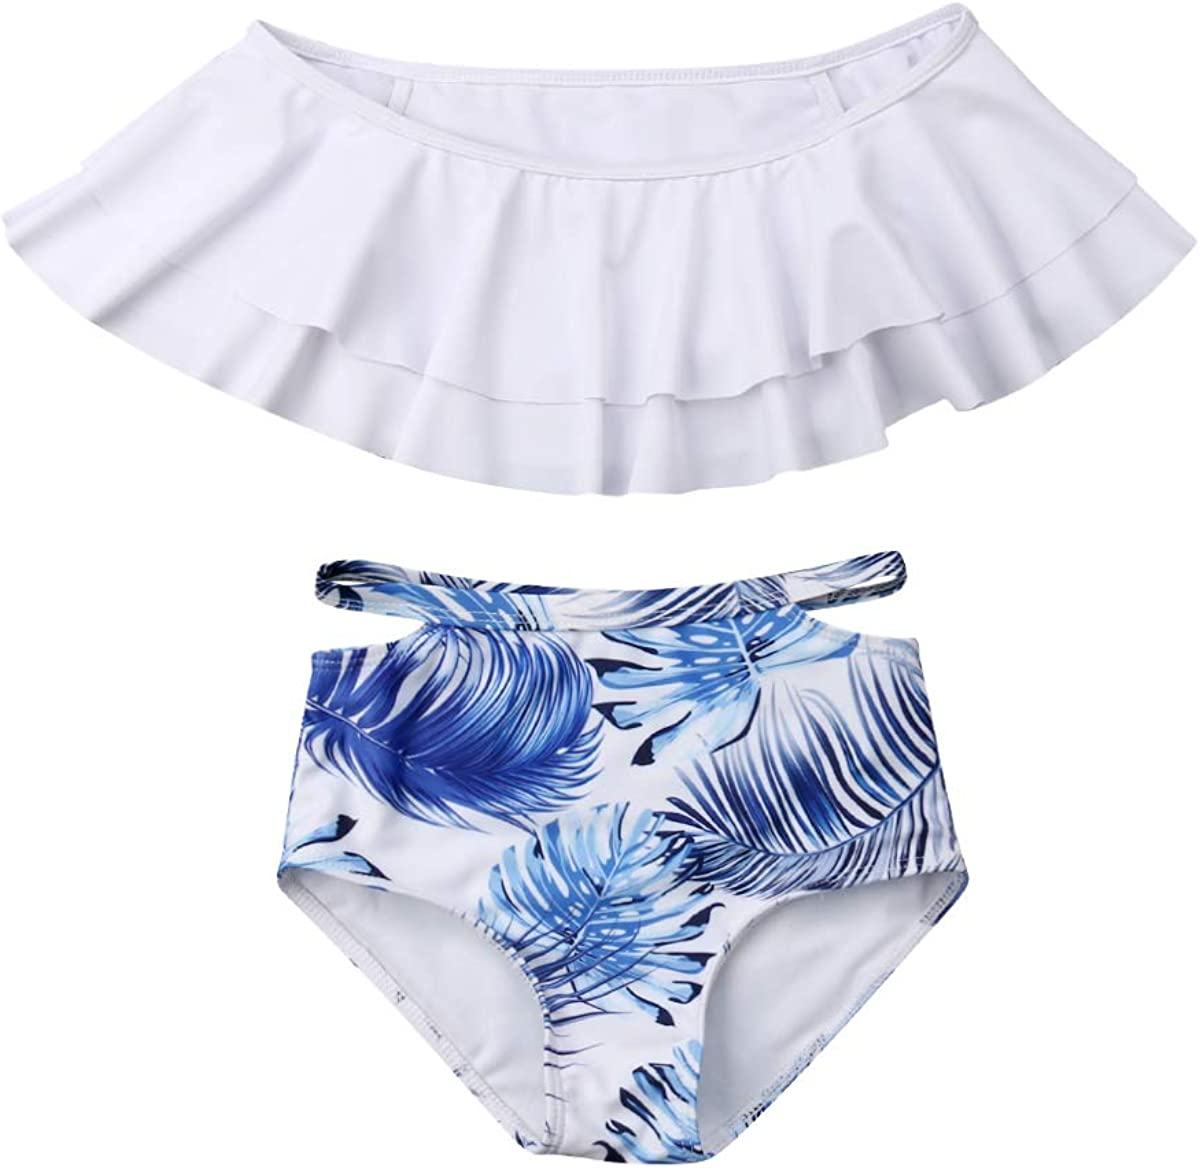 Mommy and Me Swimsuit Family Matching Palm Leaves Print Swimwear Parent Child Bathing Suit Swimming Bikini Trunks Set